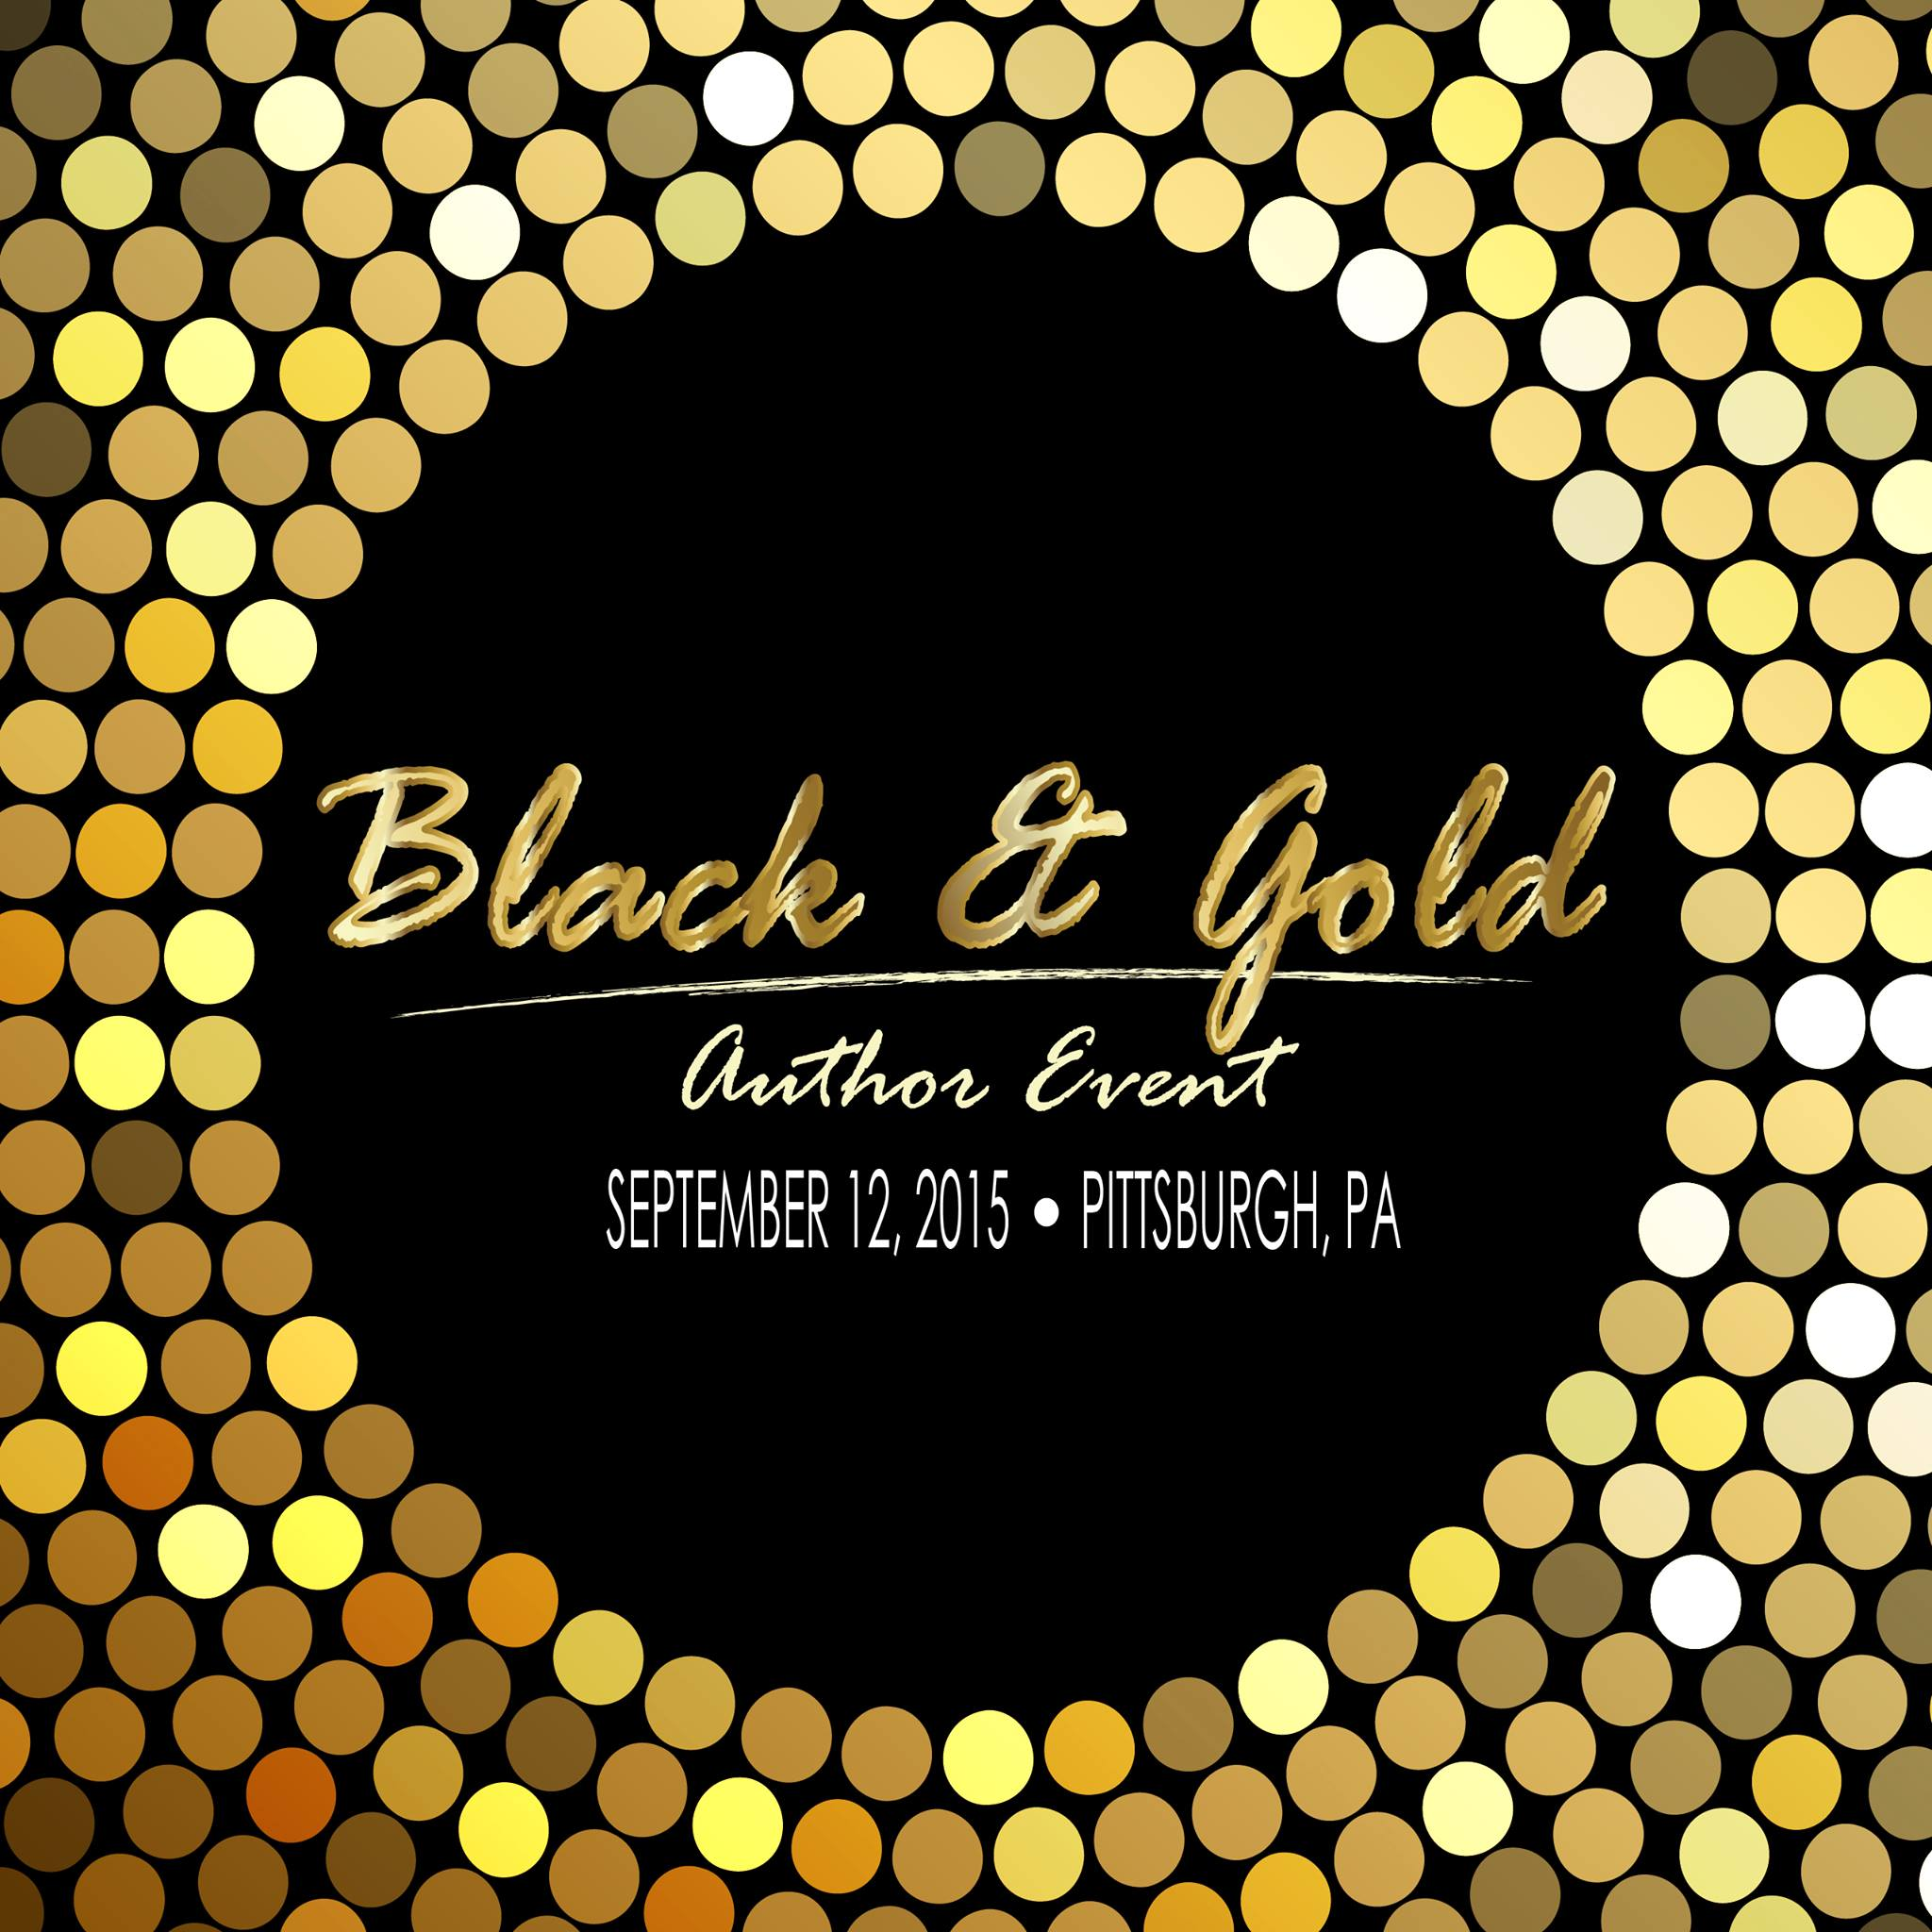 Black & Gold Author Event Wrap Up